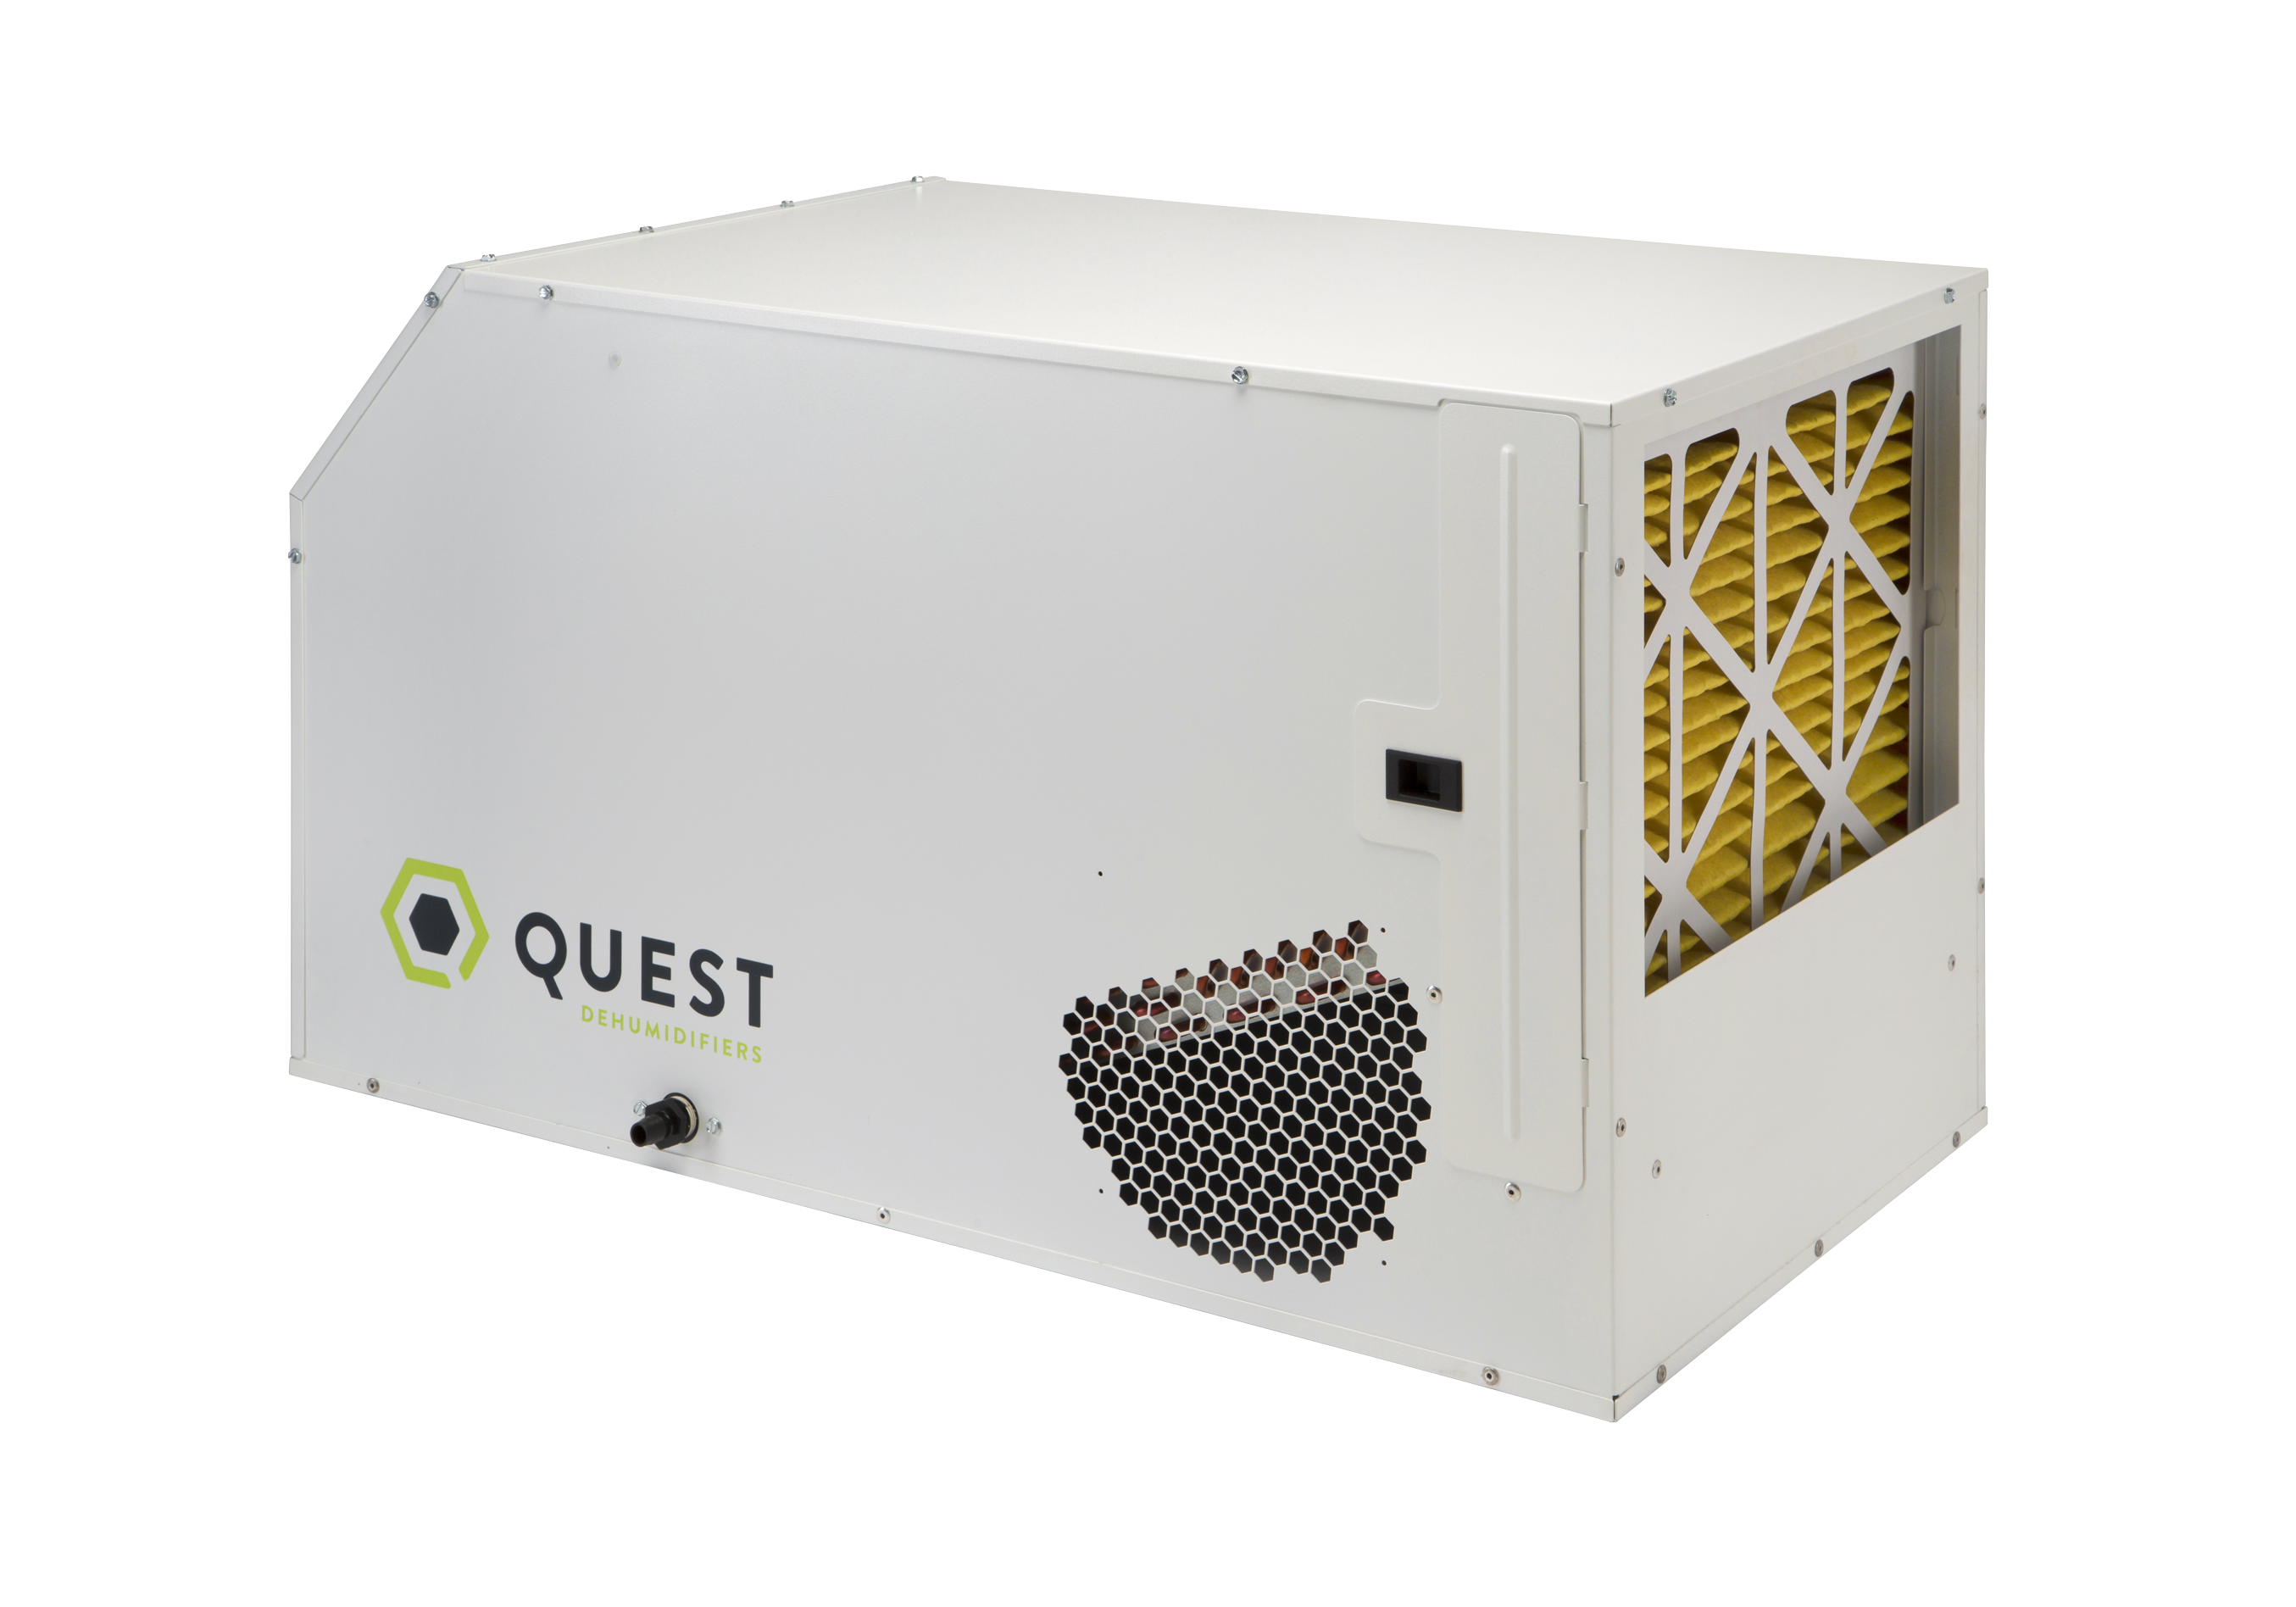 The Quest 115 Dehumidifier under review by Hydromag